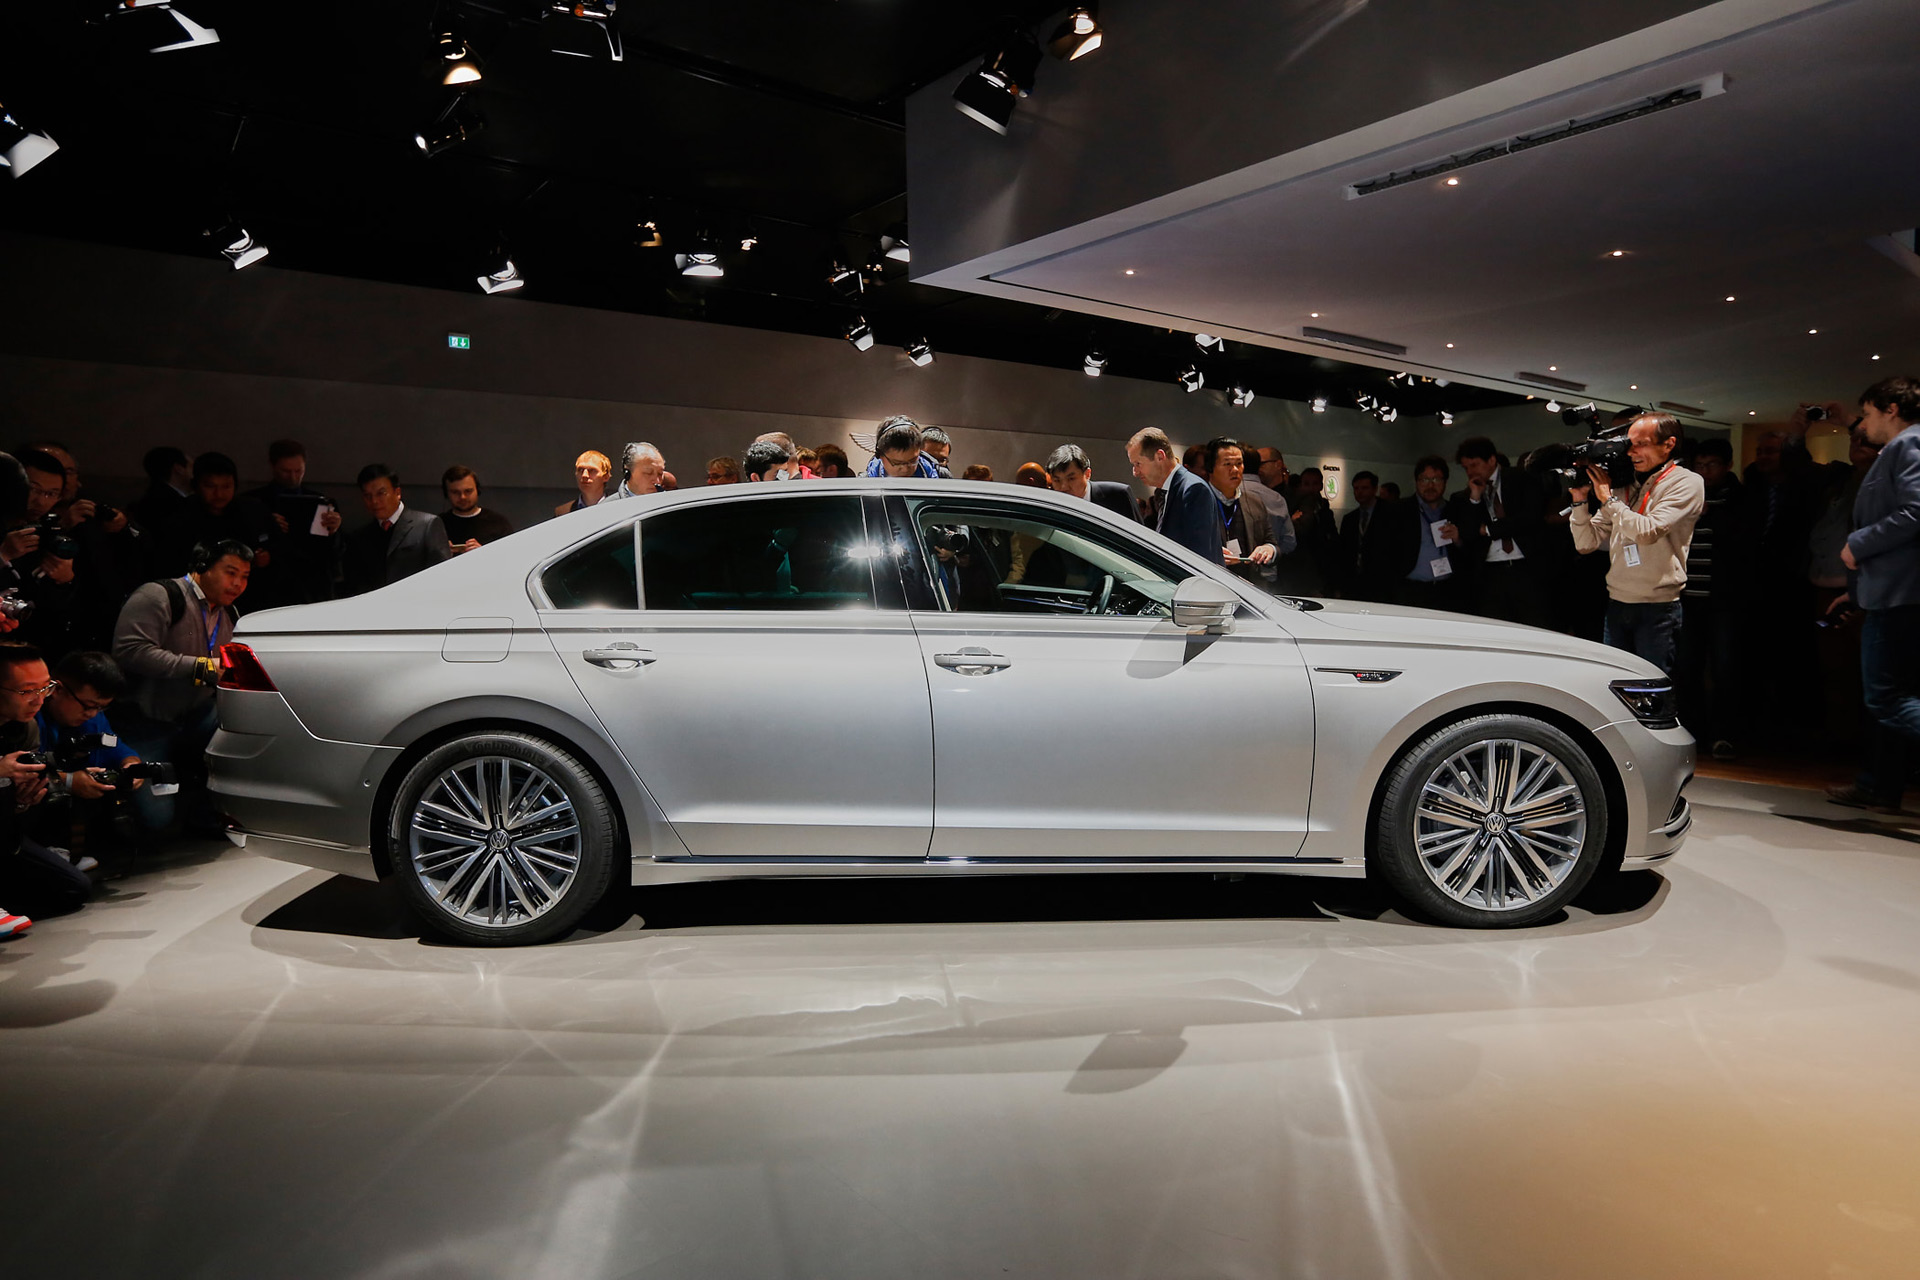 Vw Phideon Luxury Sedan Revealed Destined For China Only